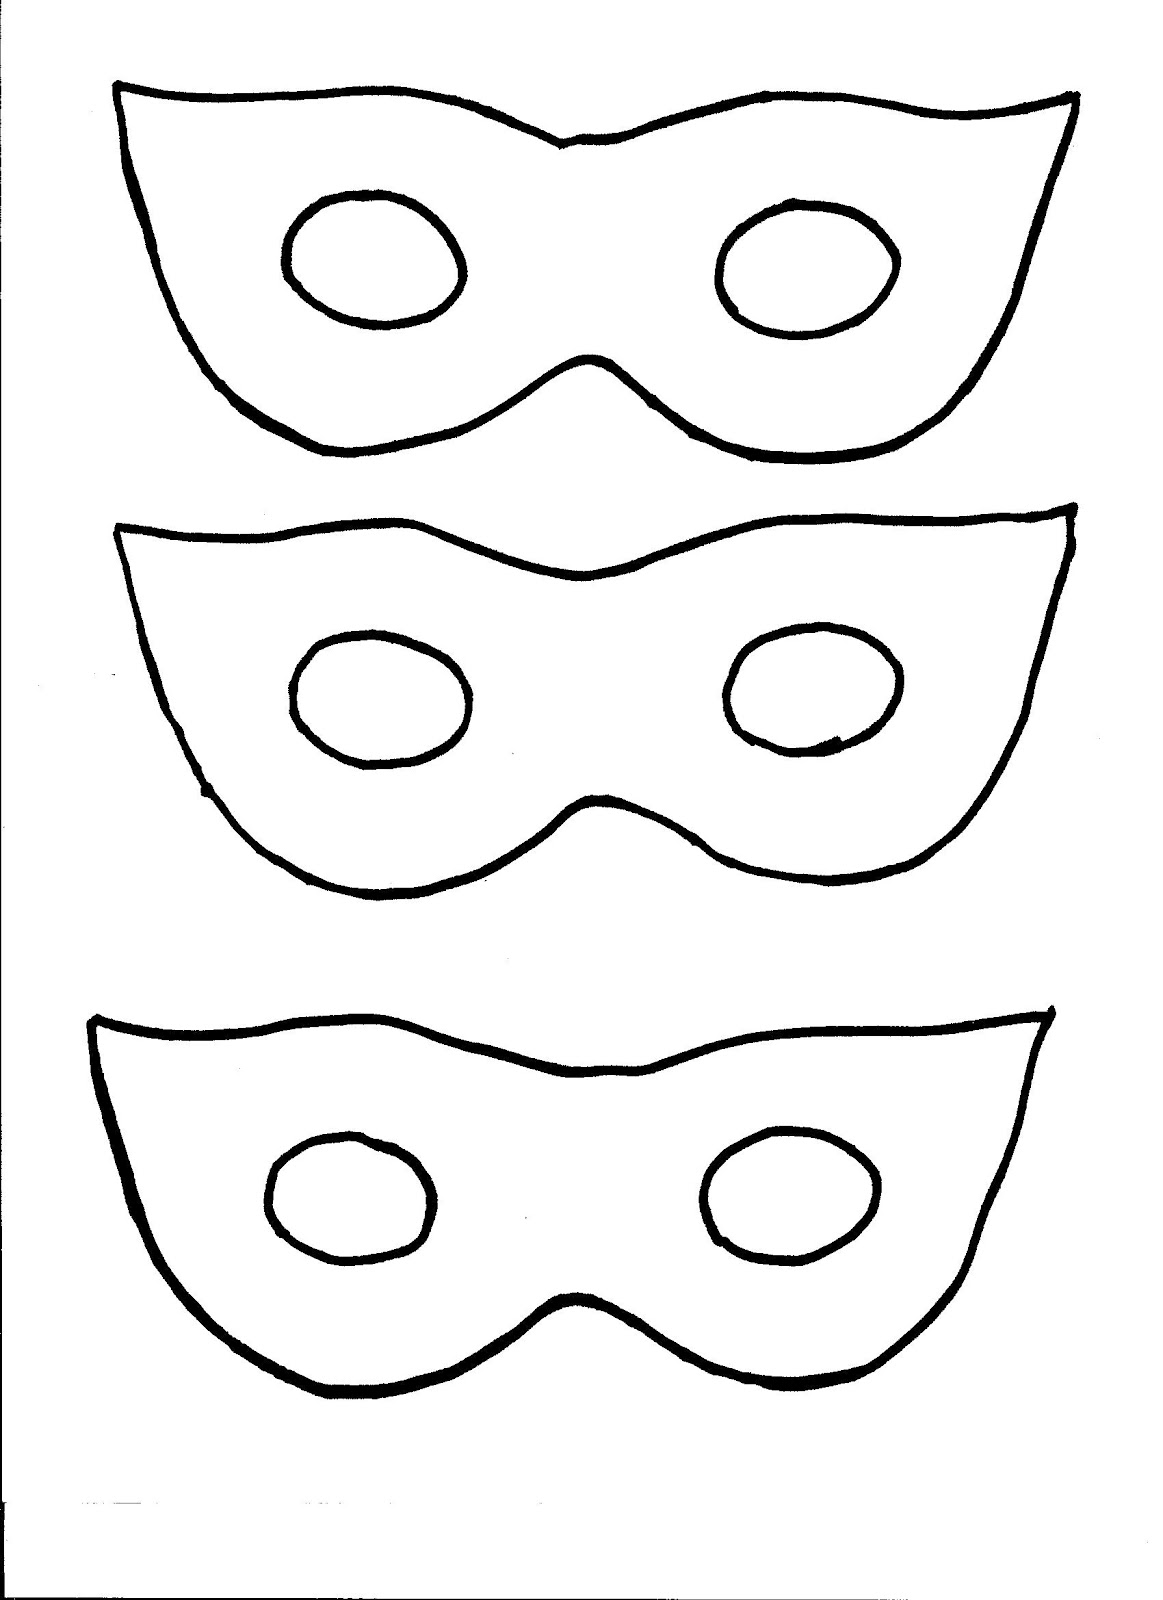 It is an image of Persnickety Masquerade Mask Template Printable